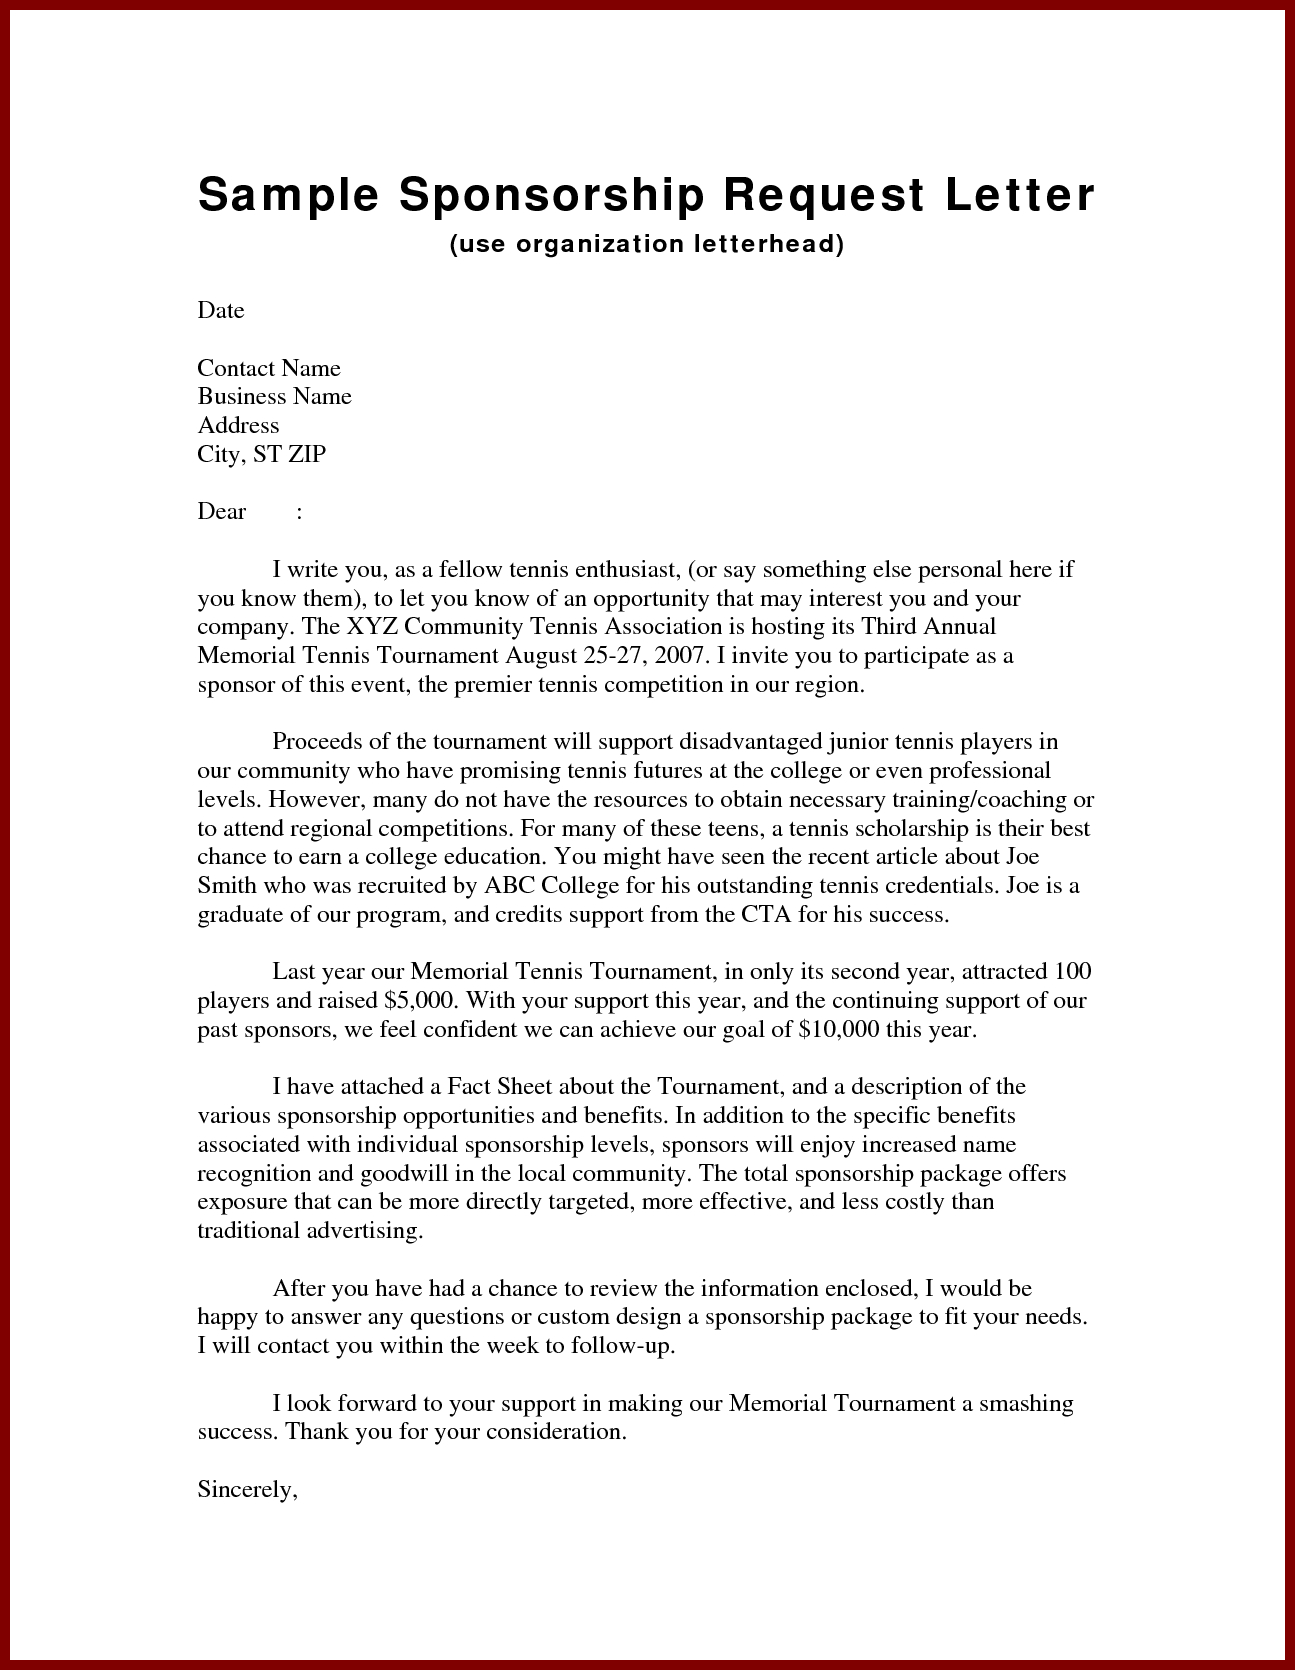 Sponsorship proposal letter template examples letter templates sponsorship proposal letter template business sponsorship letter template gallery business cards ideas cheaphphosting Images